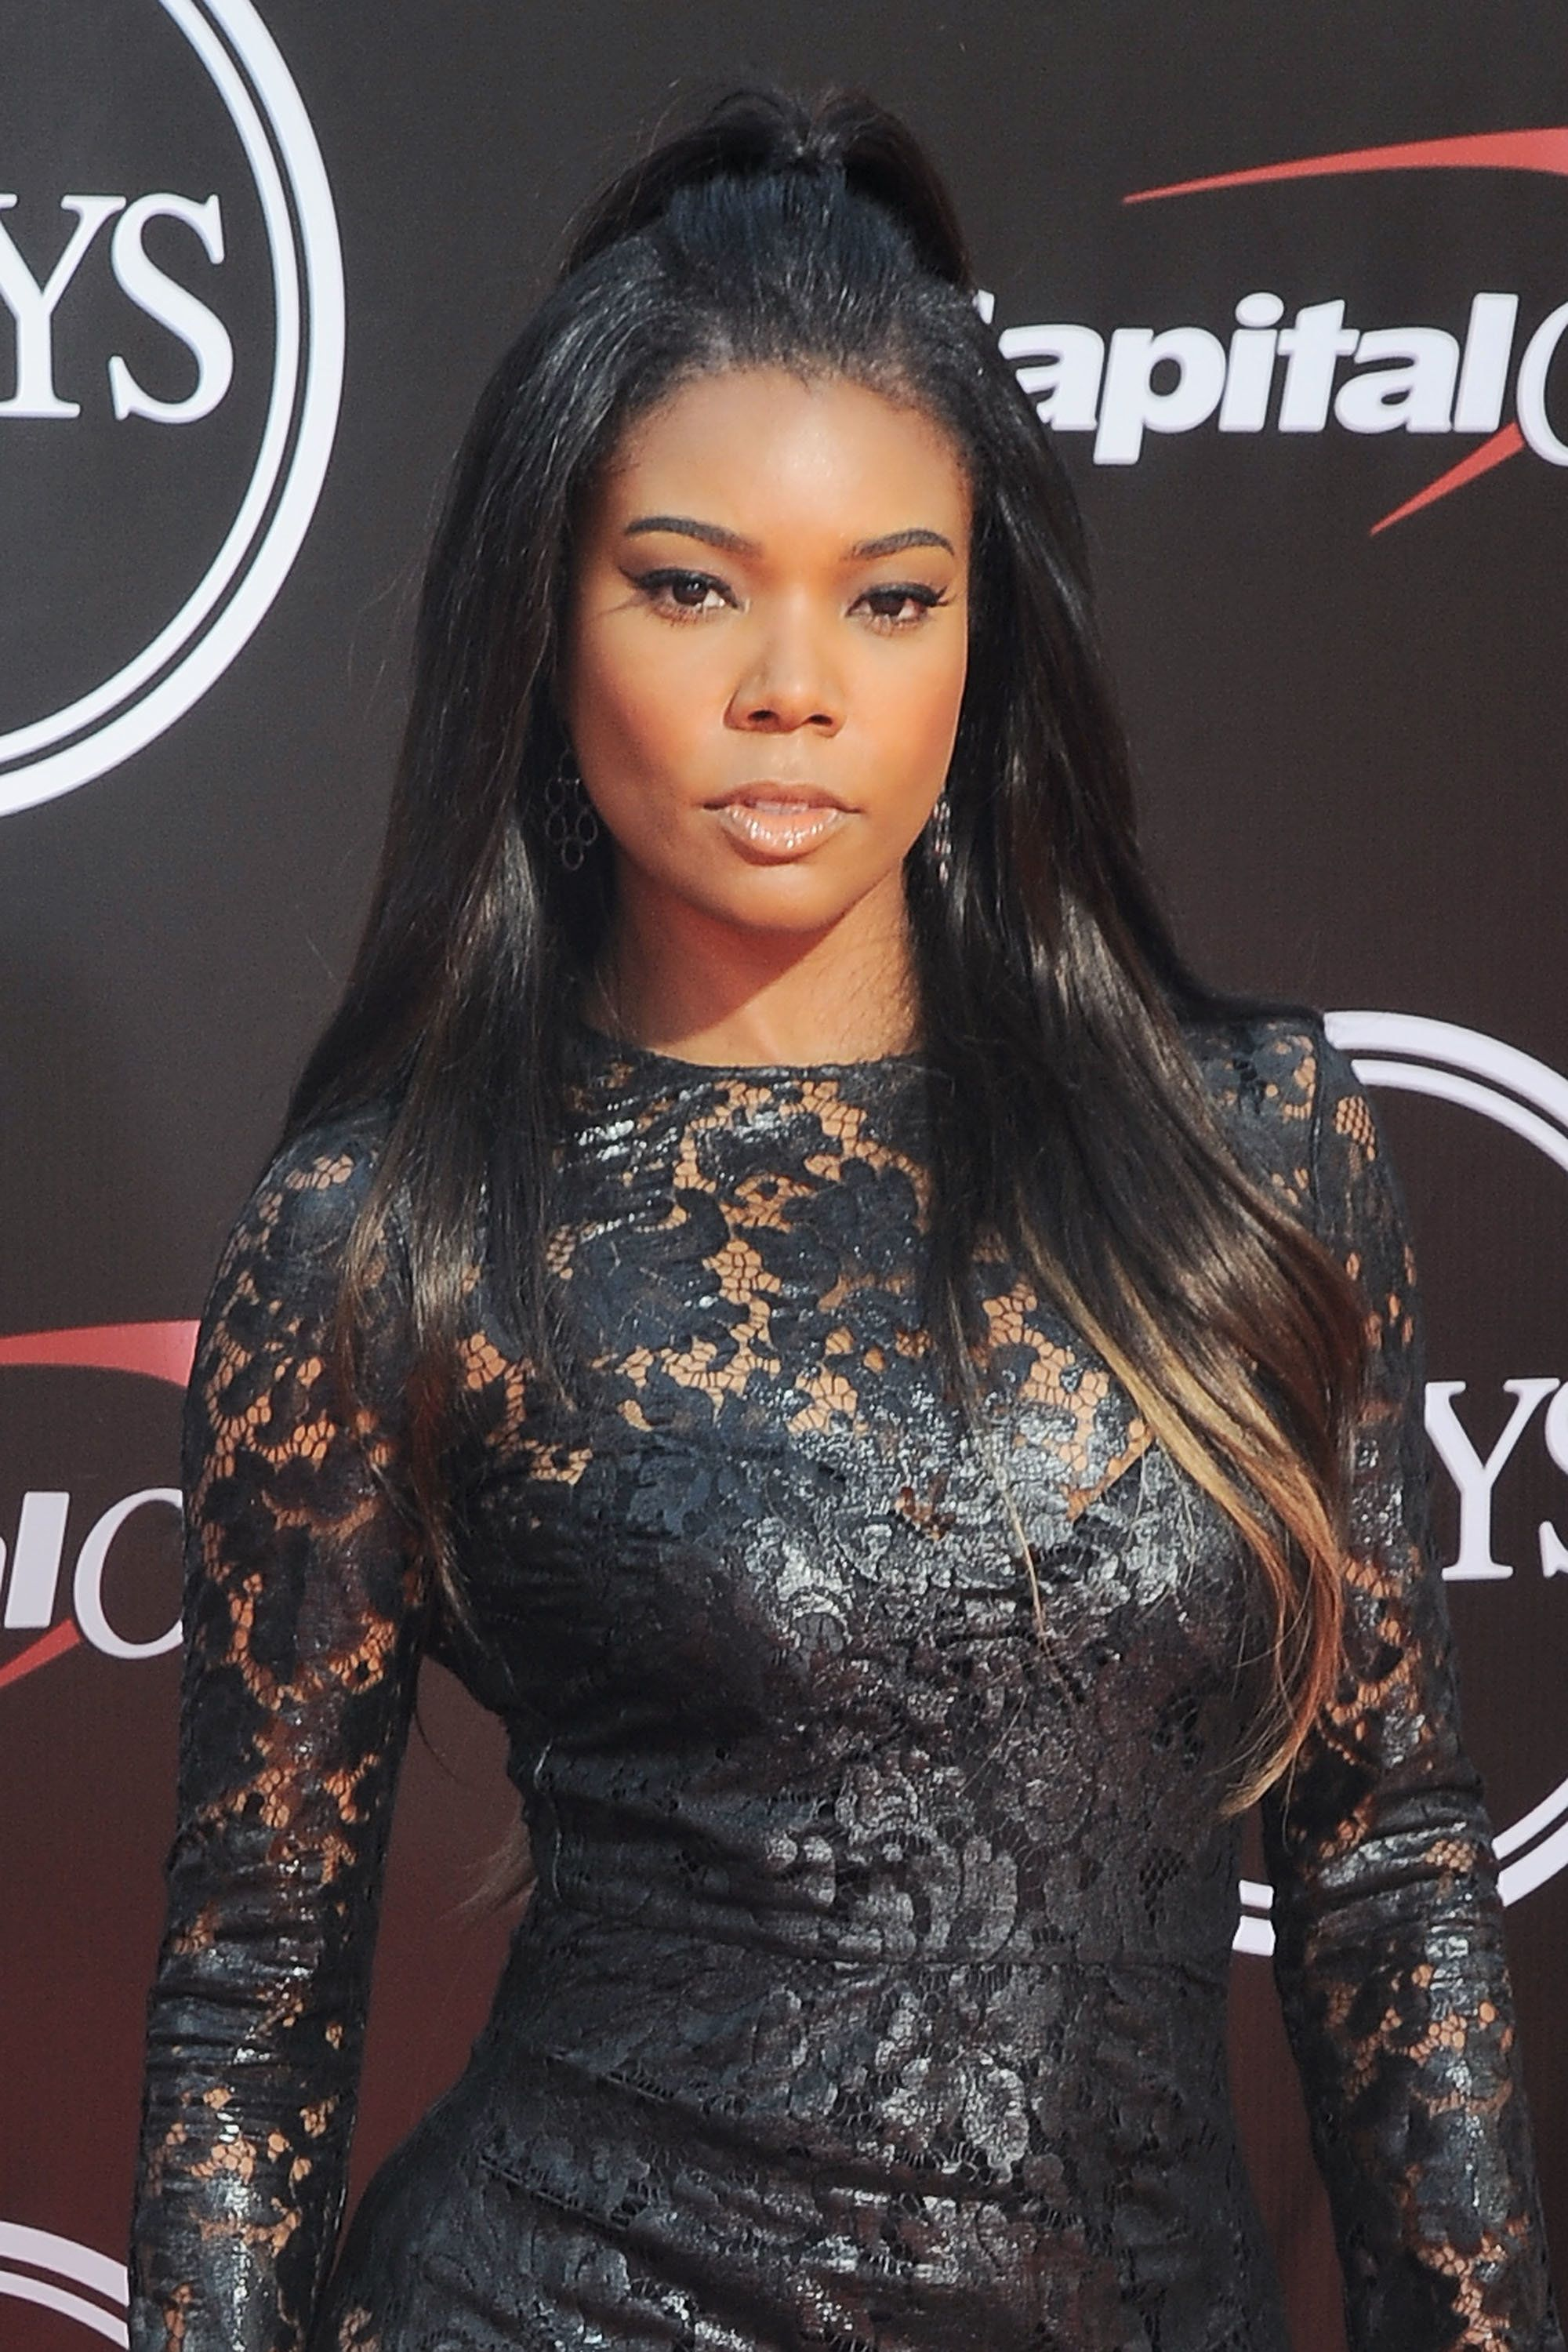 LOS ANGELES, CA - JULY 13:  Gabrielle Union attends the 2016 ESPYS at Microsoft Theater on July 13, 2016 in Los Angeles, California.  (Photo by David Crotty/Patrick McMullan via Getty Images)